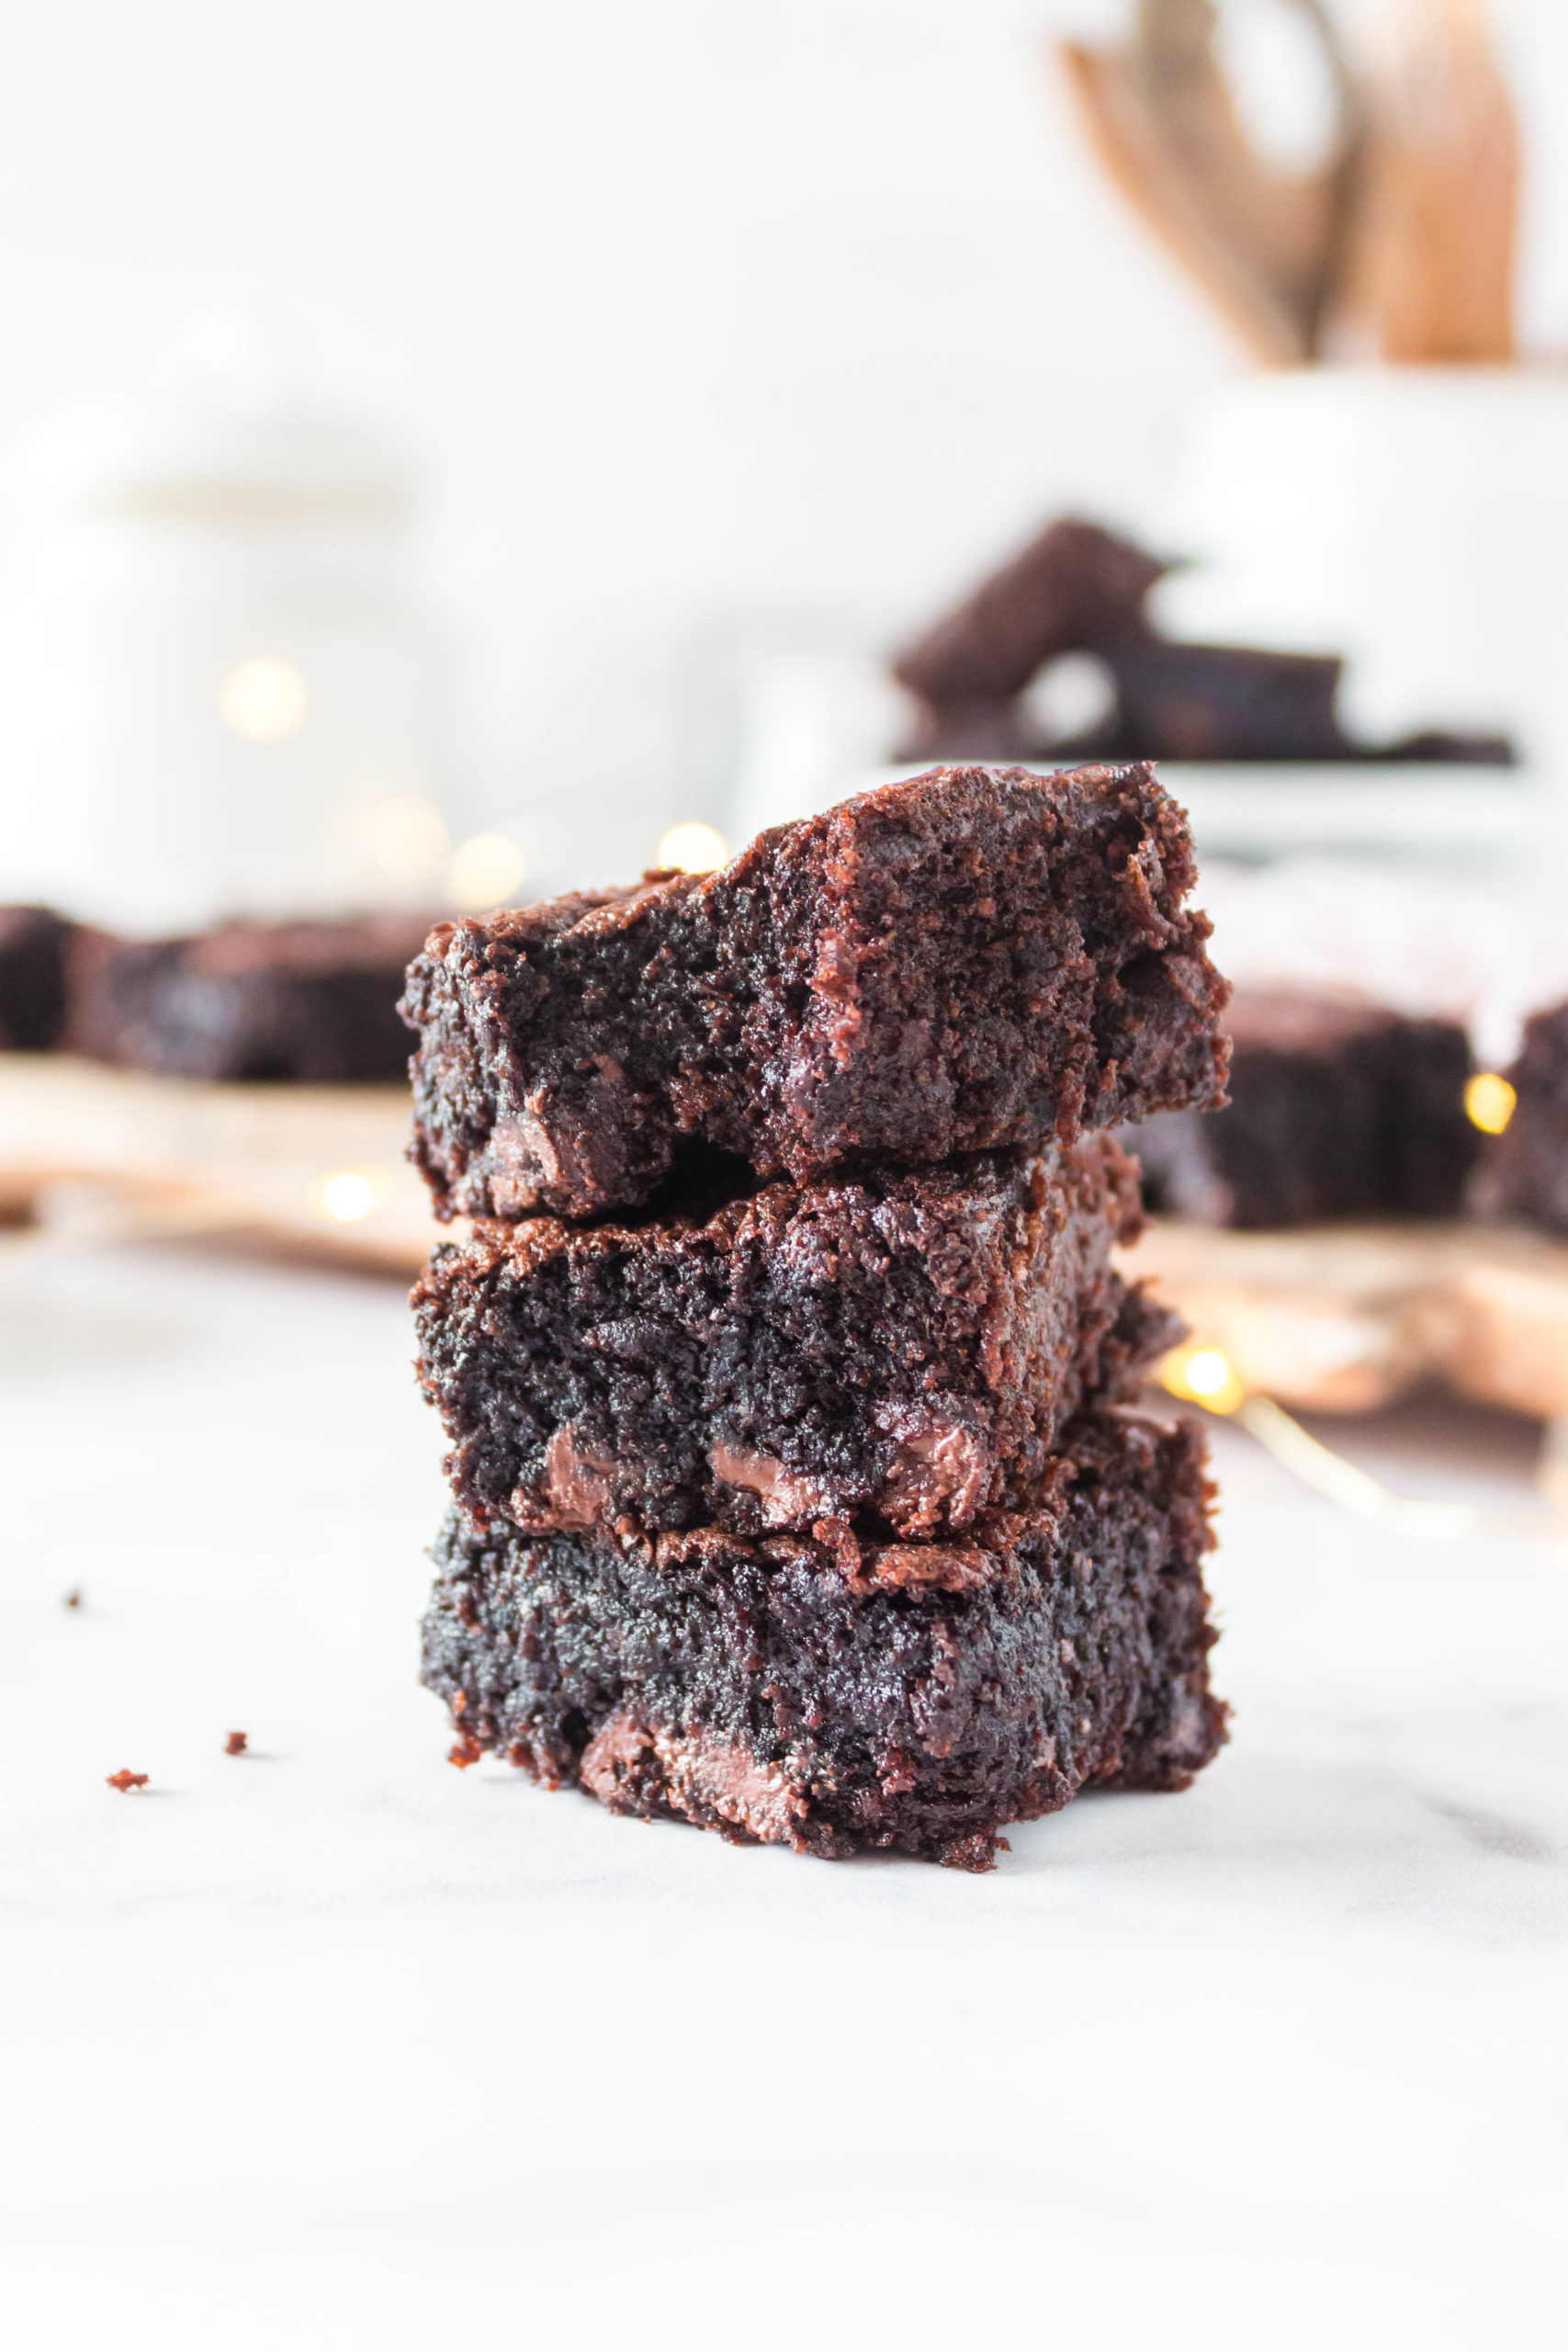 These delicious Keto Fudgy Brownies from Lauren Kelly Nutrition are simple to make and sugar free!